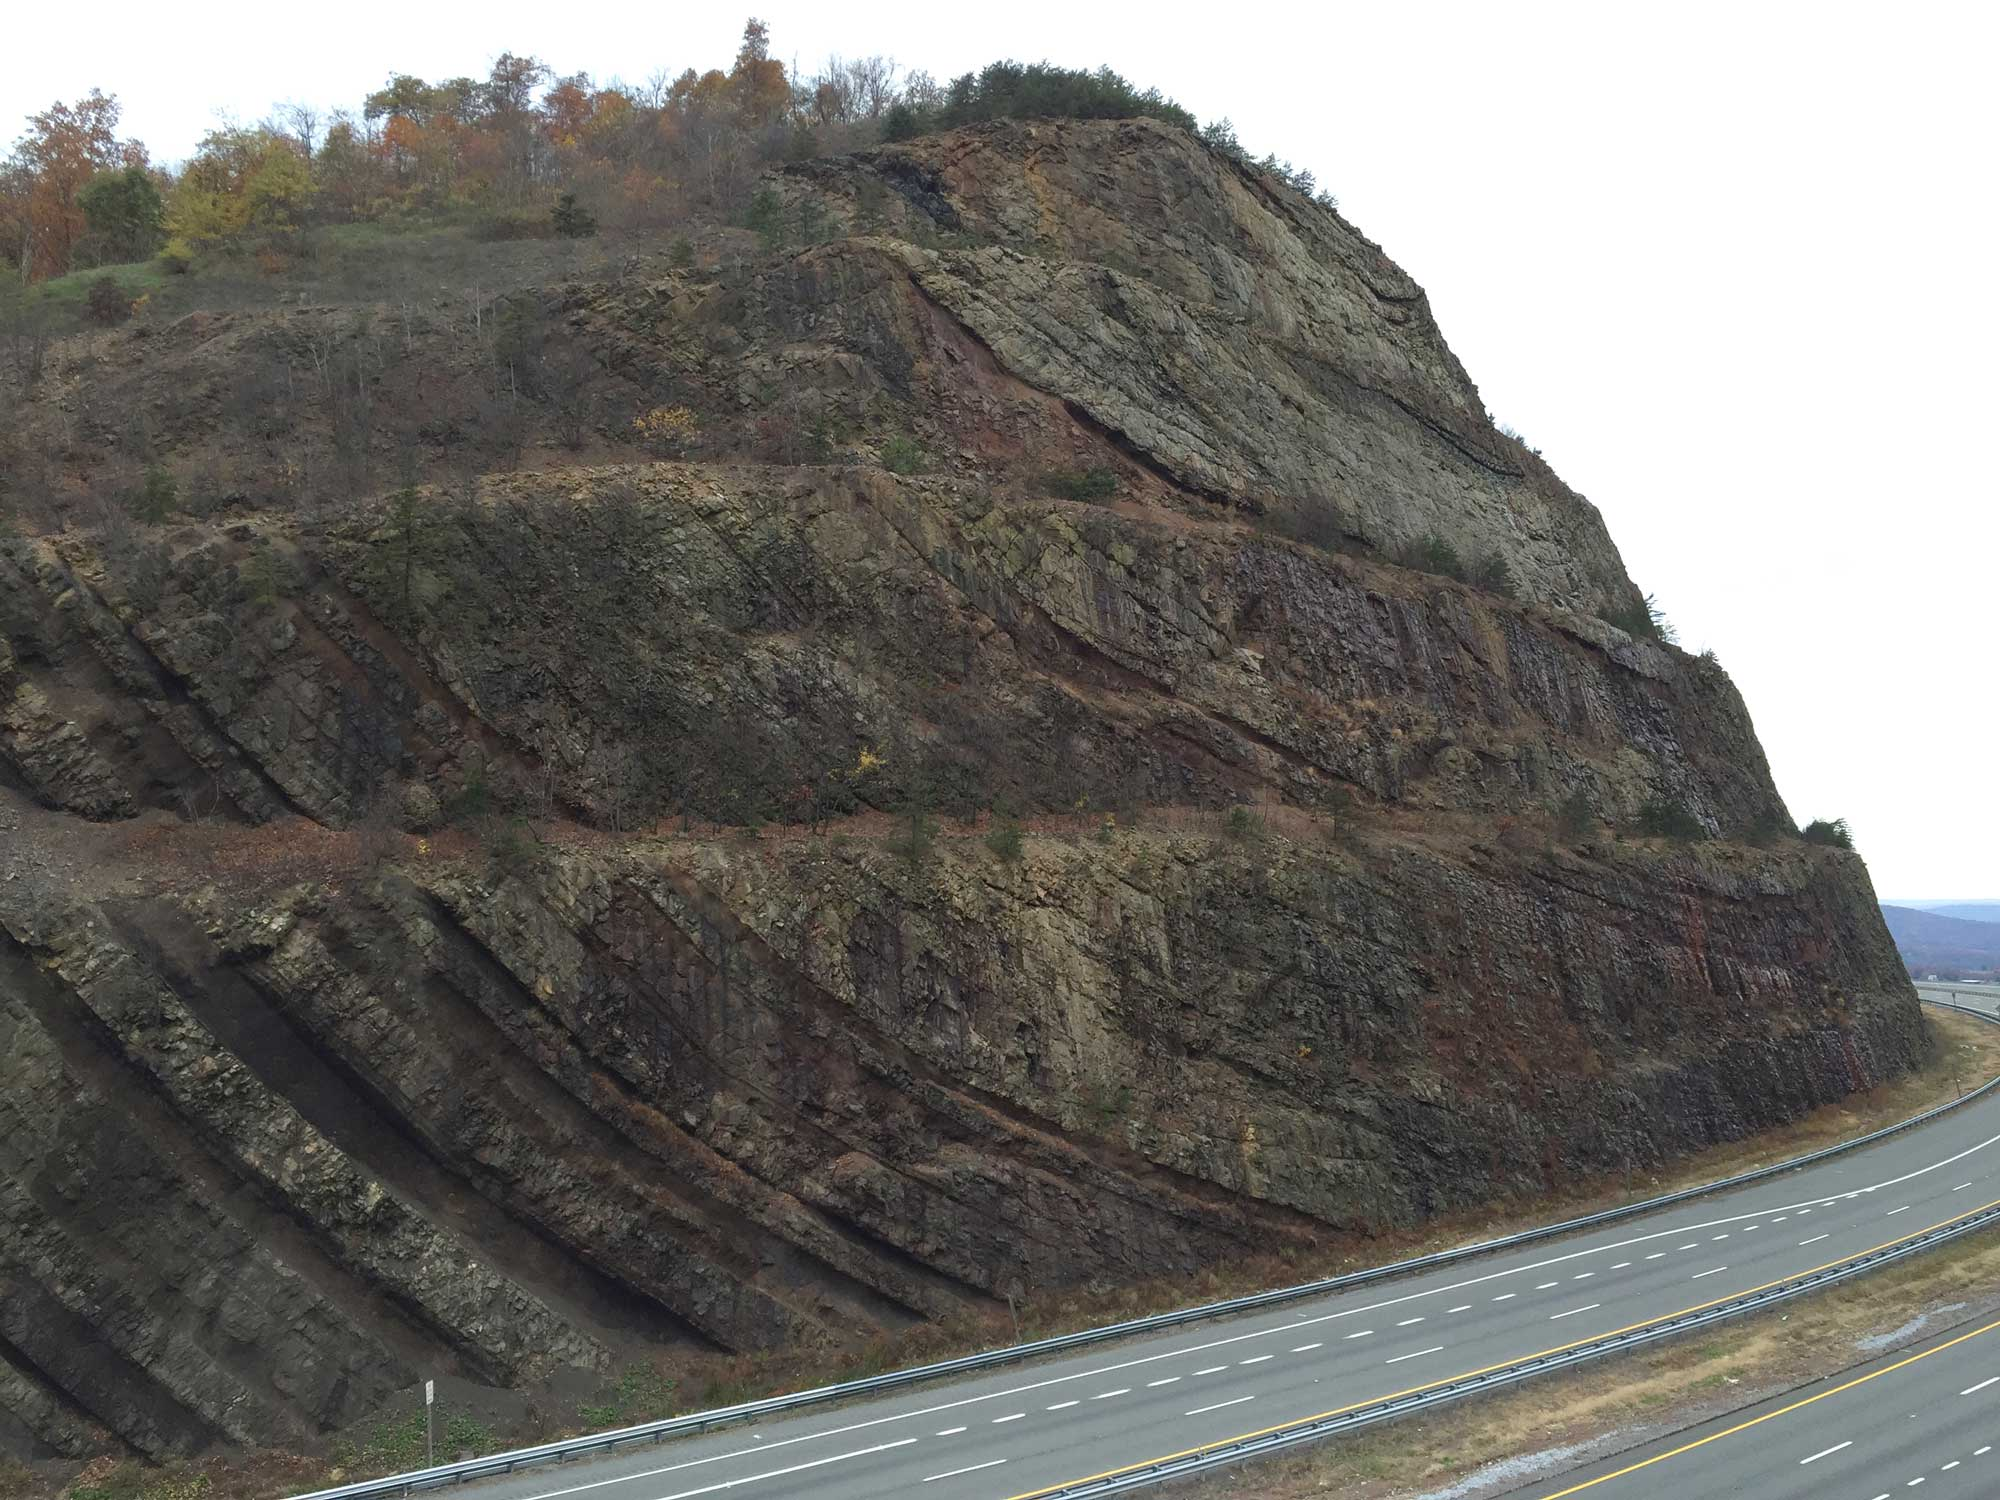 Photograph of a syncline exposed at the Sideling Hill roadcut in Maryland.